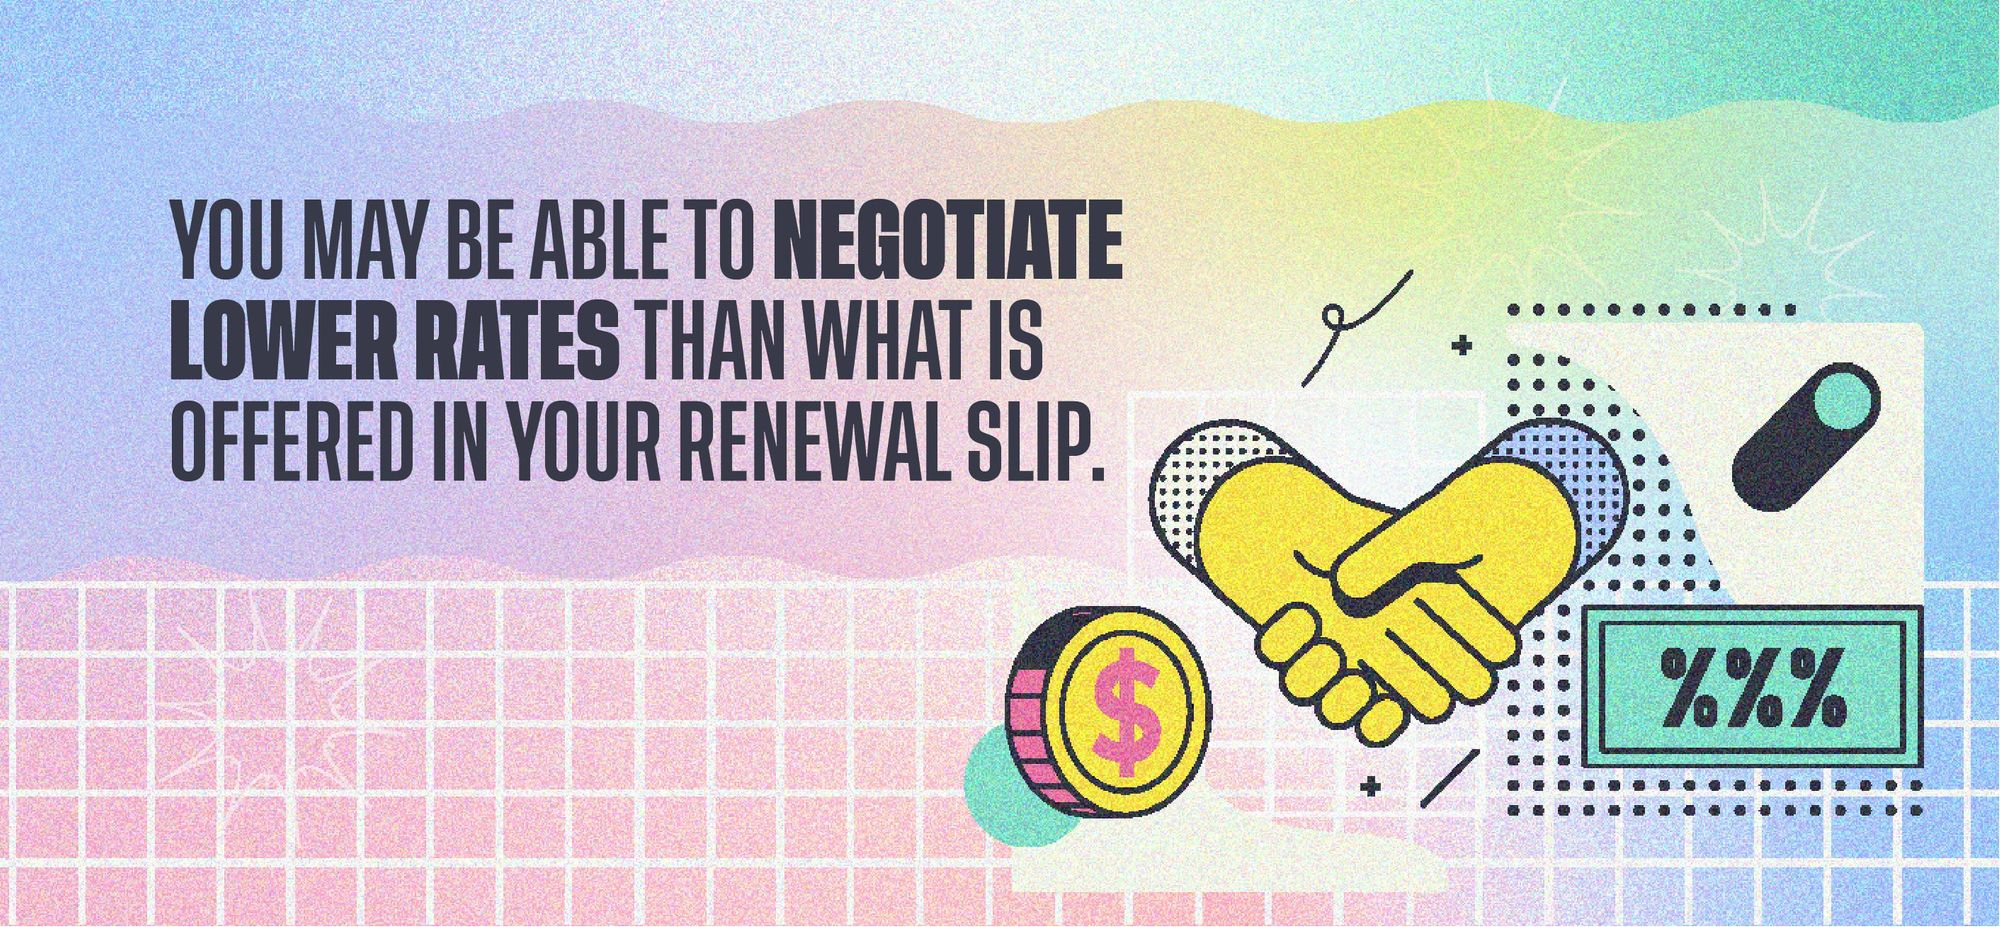 You may be able to negotiate lower rates than what is offered in your renewal slip.